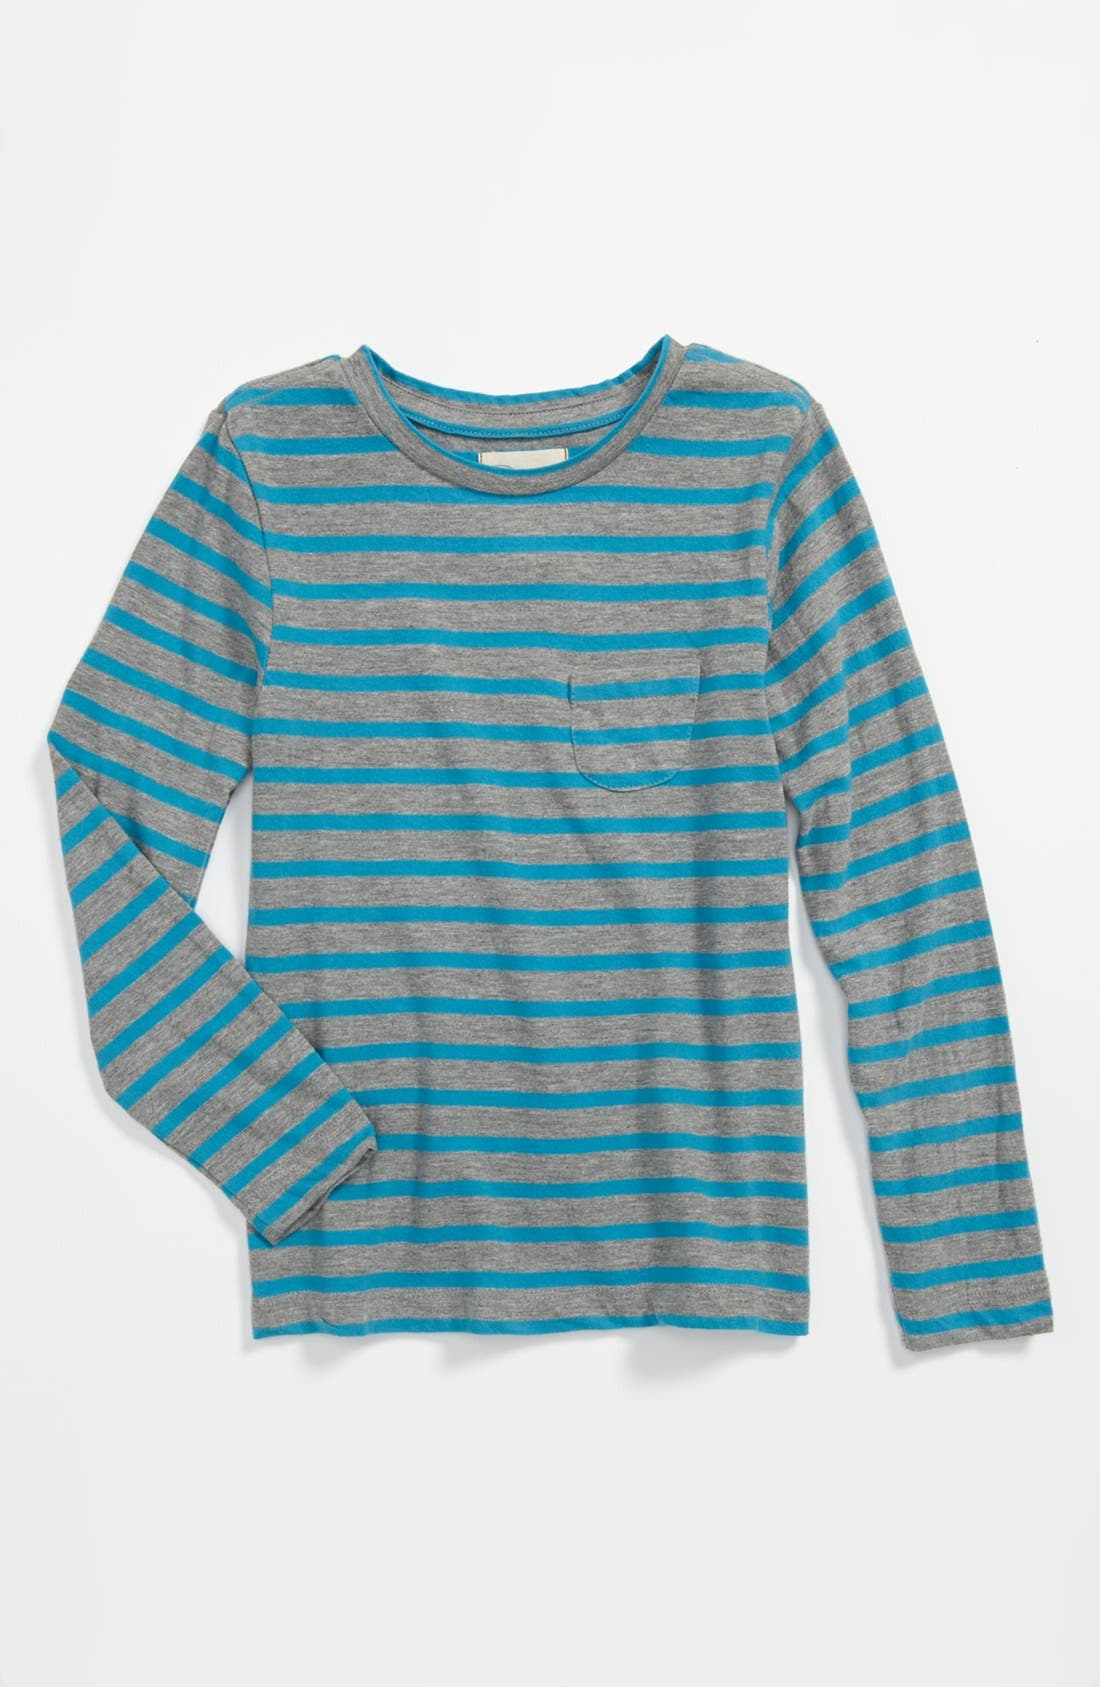 Alternate Image 1 Selected - Peek 'Myra' Long Sleeve Tee (Toddler Girls, Little Girls & Big Girls)